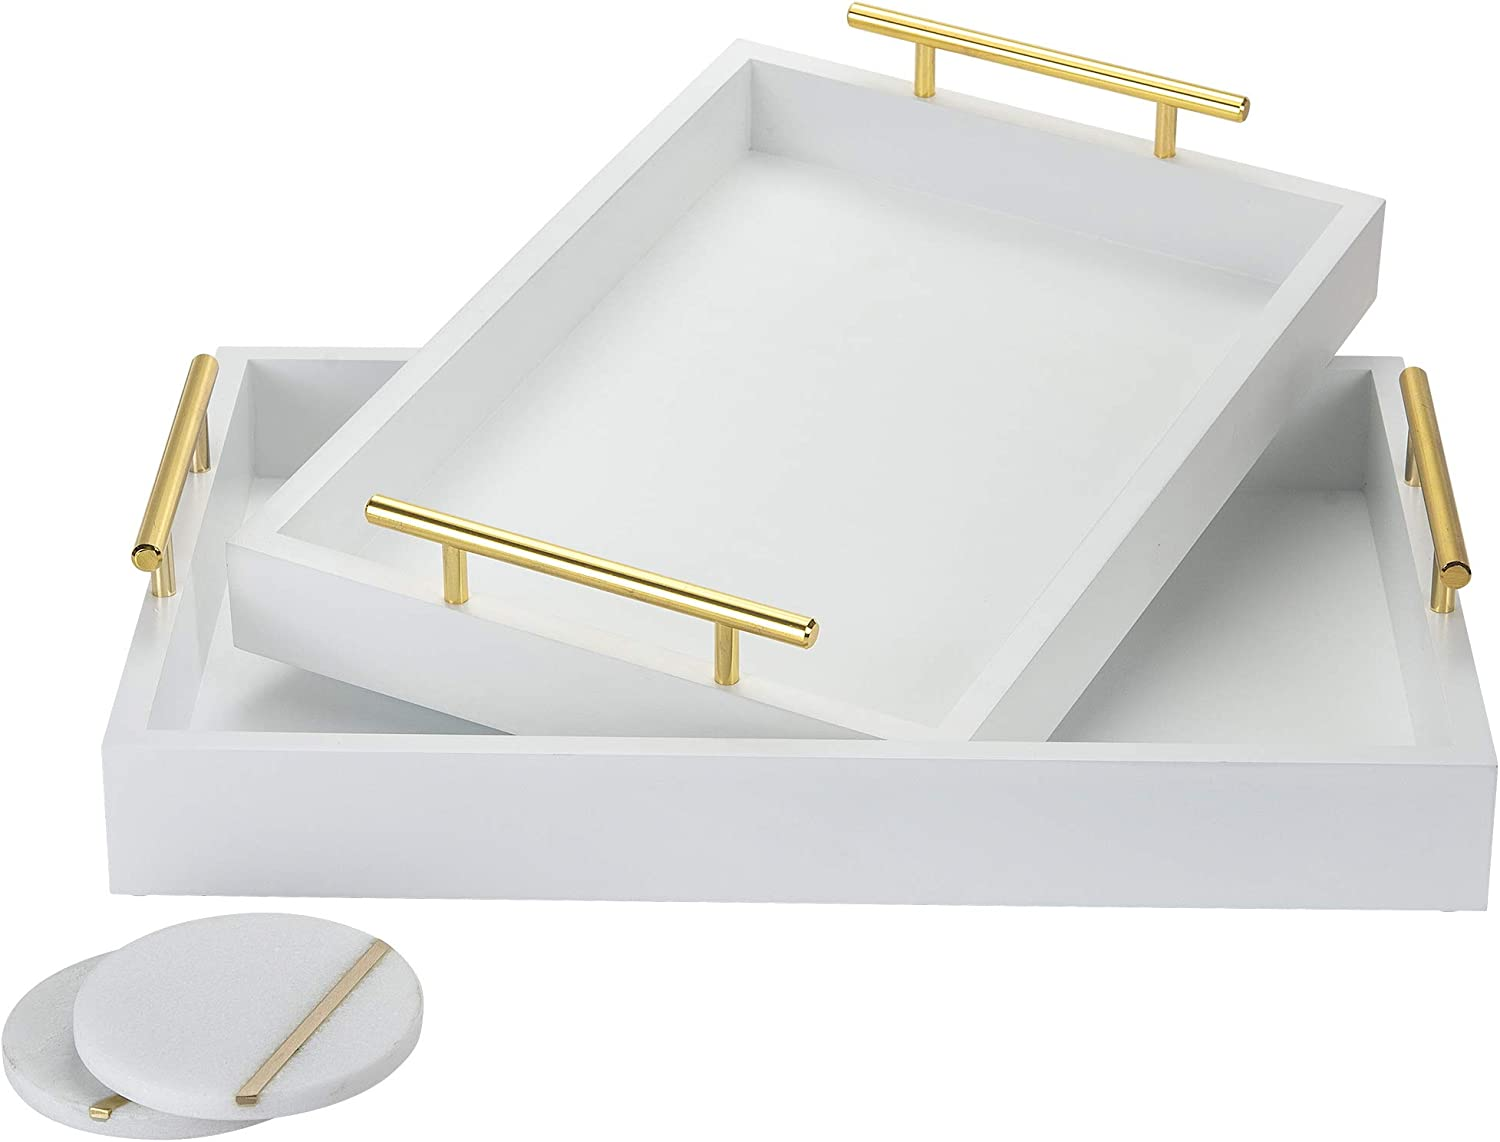 Novus Luxe Decorative Trays - Set of 2 Multifunctional Coffee Table Décor Serving Trays with 2 Marble Coasters - White Dresser Organizer Vanity Trays for Jewelry & Perfume with Gold Metal Handles: Kitchen & Dining